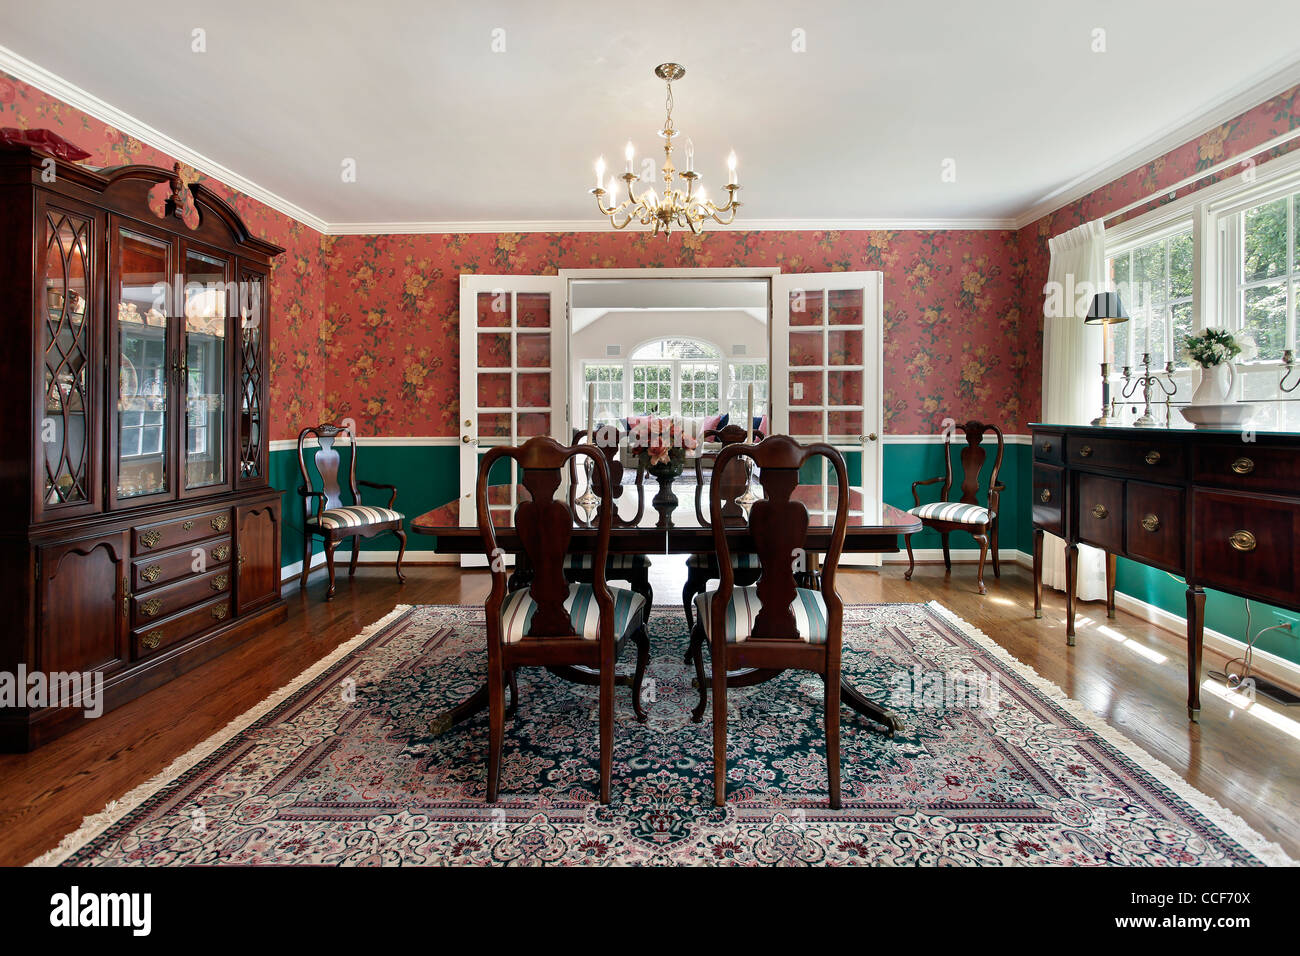 Formal Dining Room With French Doors And Red Walls